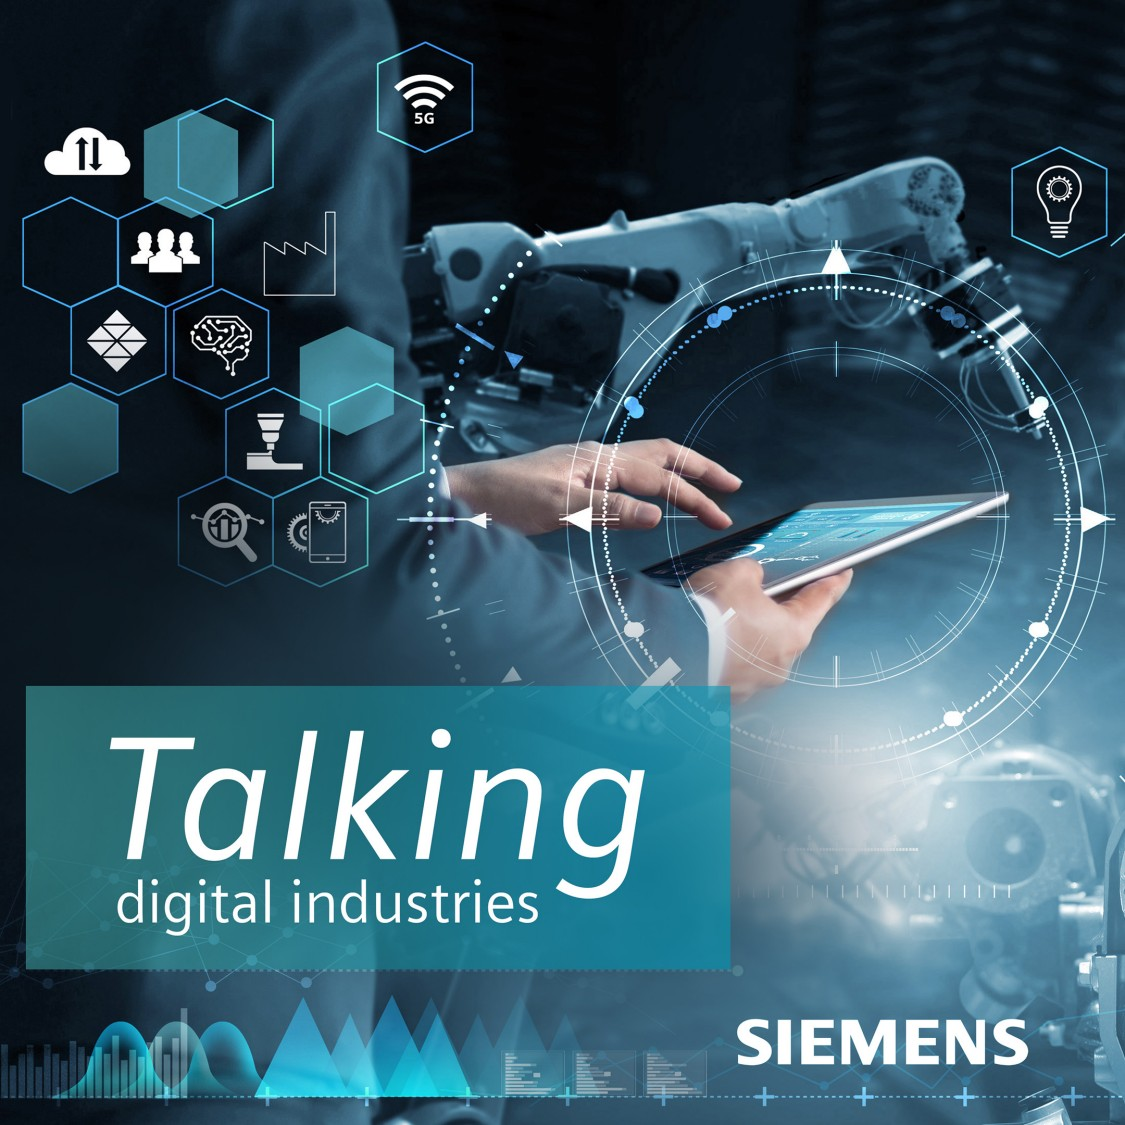 Talking digital industries – The podcast series for technologies and trends that drive industrial enterprises